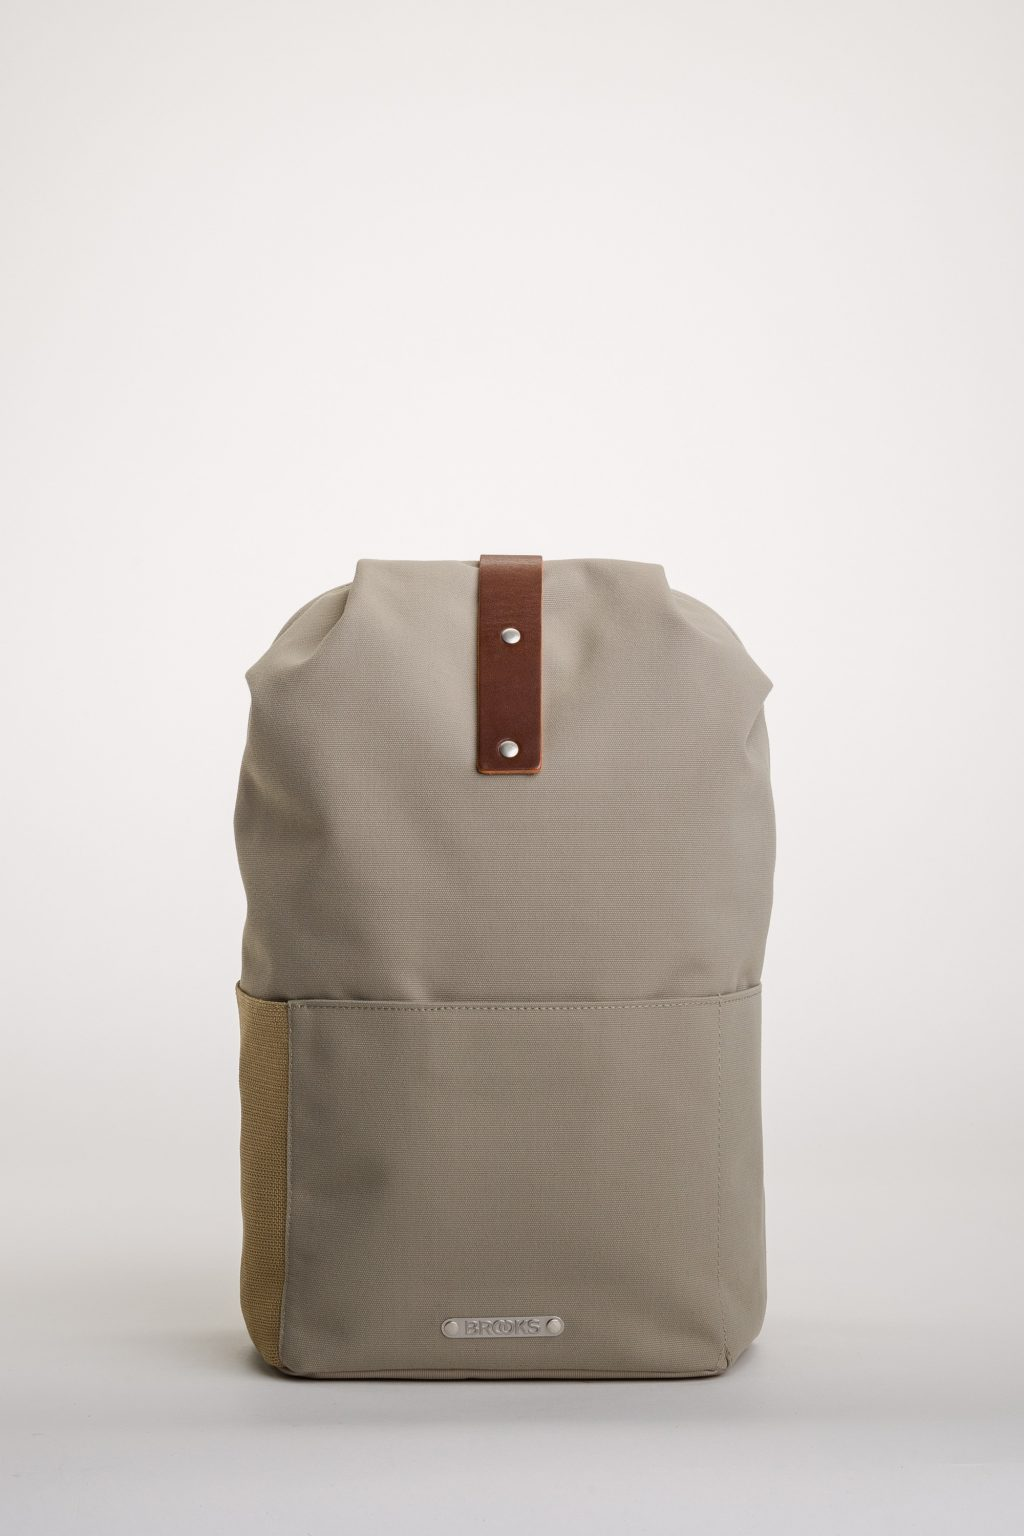 The Dalston Knapsack Medium Review